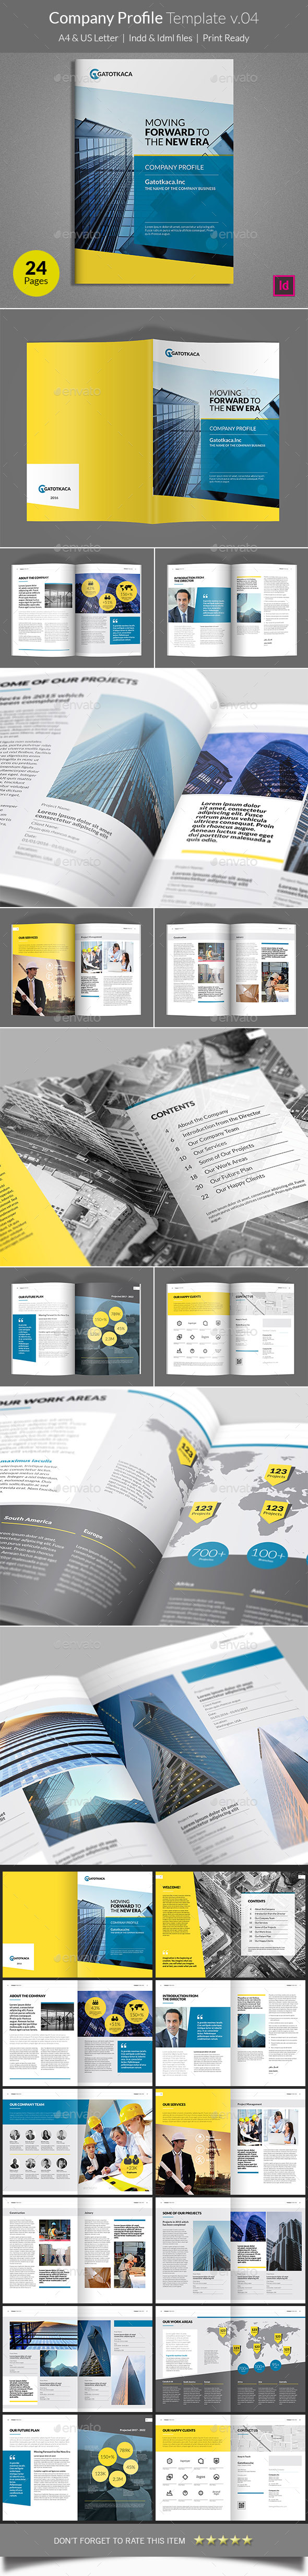 Company Profile Template v04 - Corporate Brochures